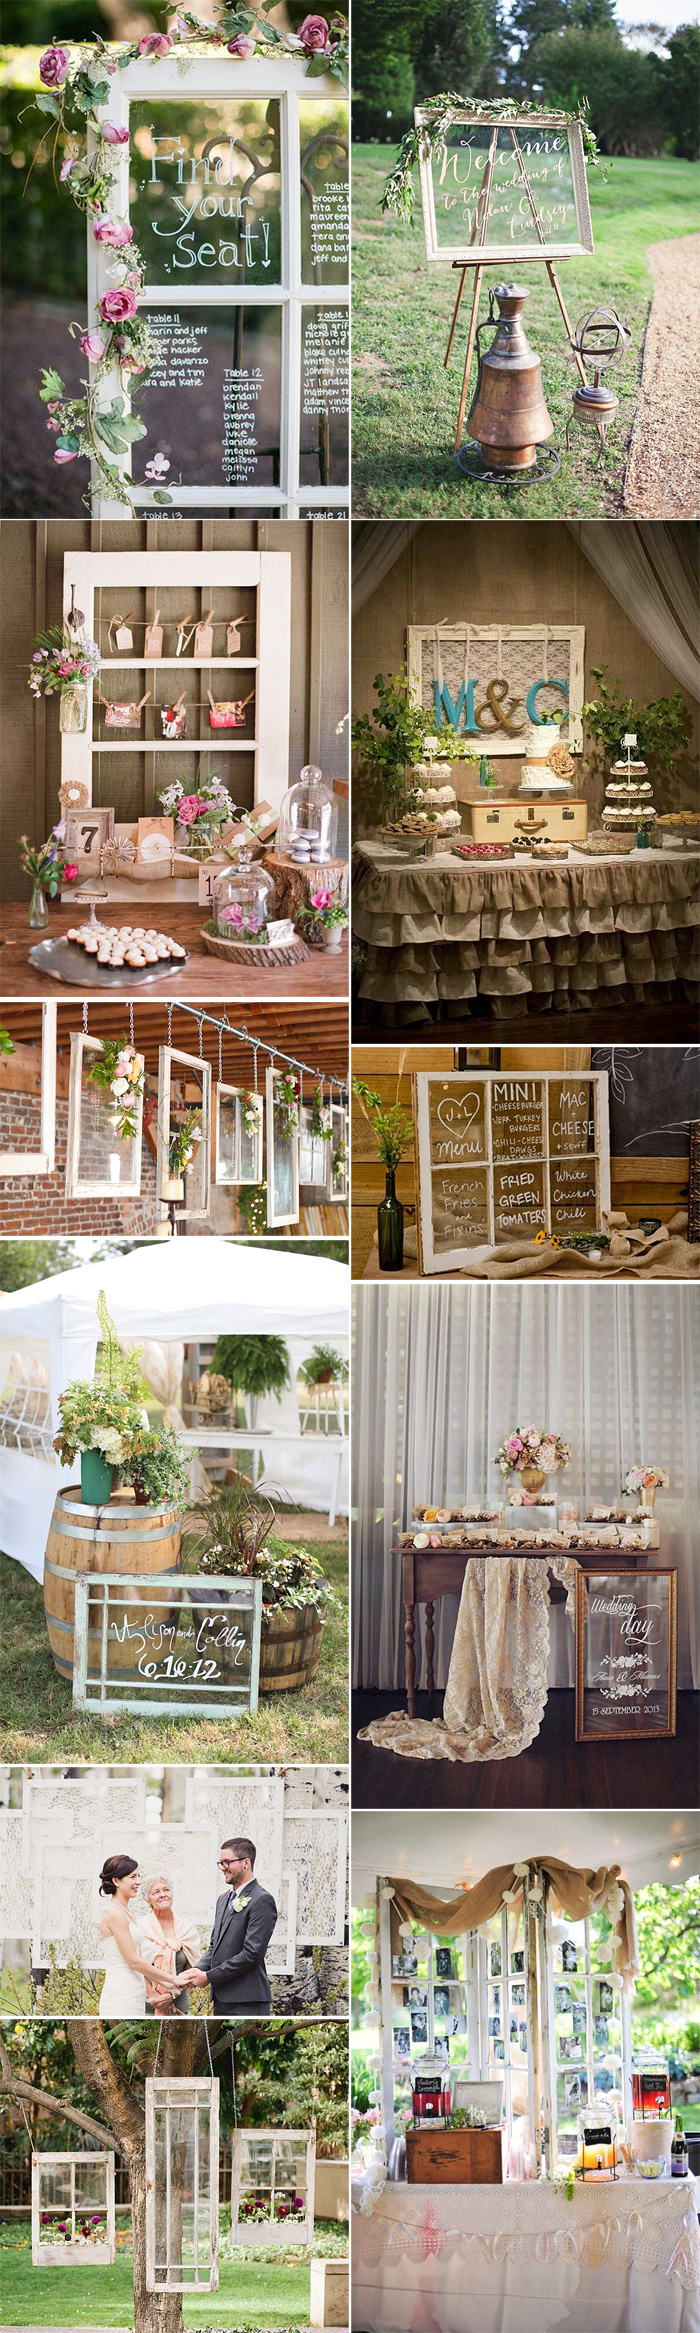 Decoraci n de bodas vintage for Ideas originales de decoracion